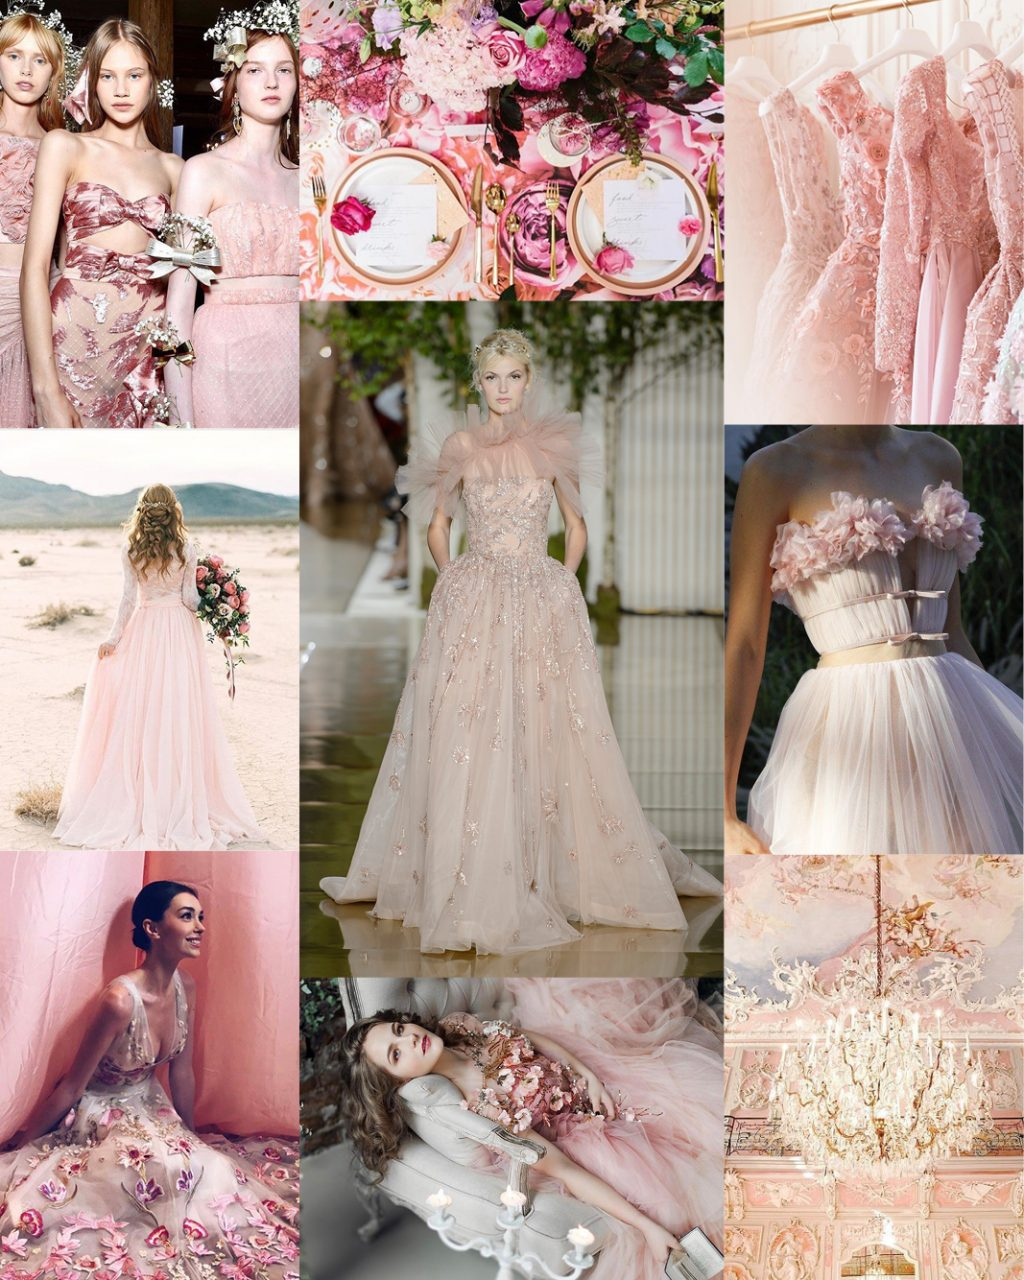 7 Wedding Trends That Will Be Huge For 2018